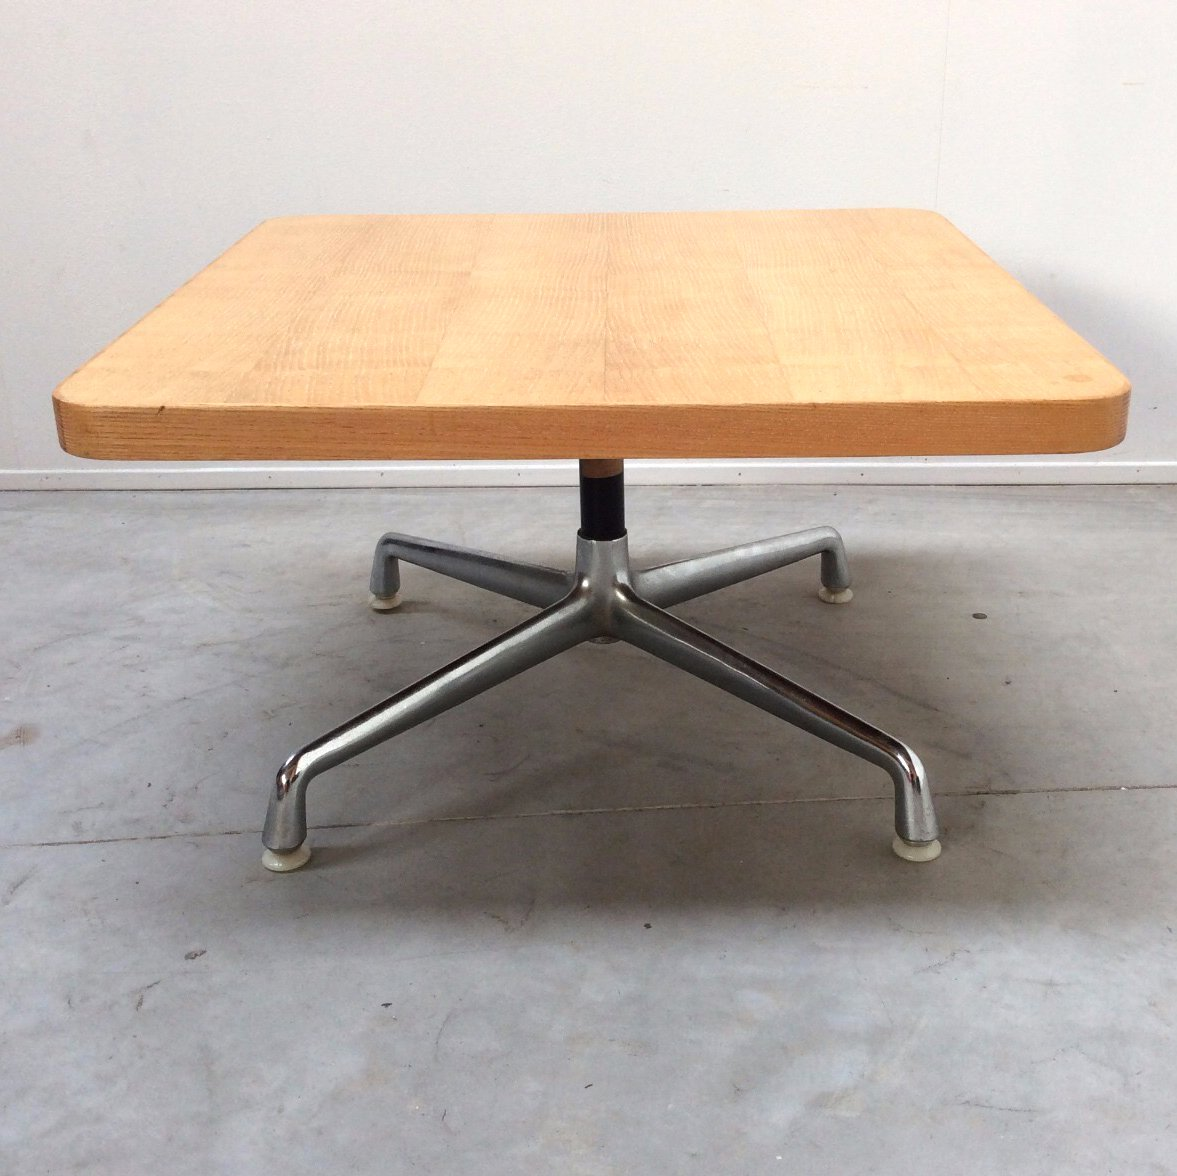 Vintage American Coffee Table by Charles Eames for Herman Miller